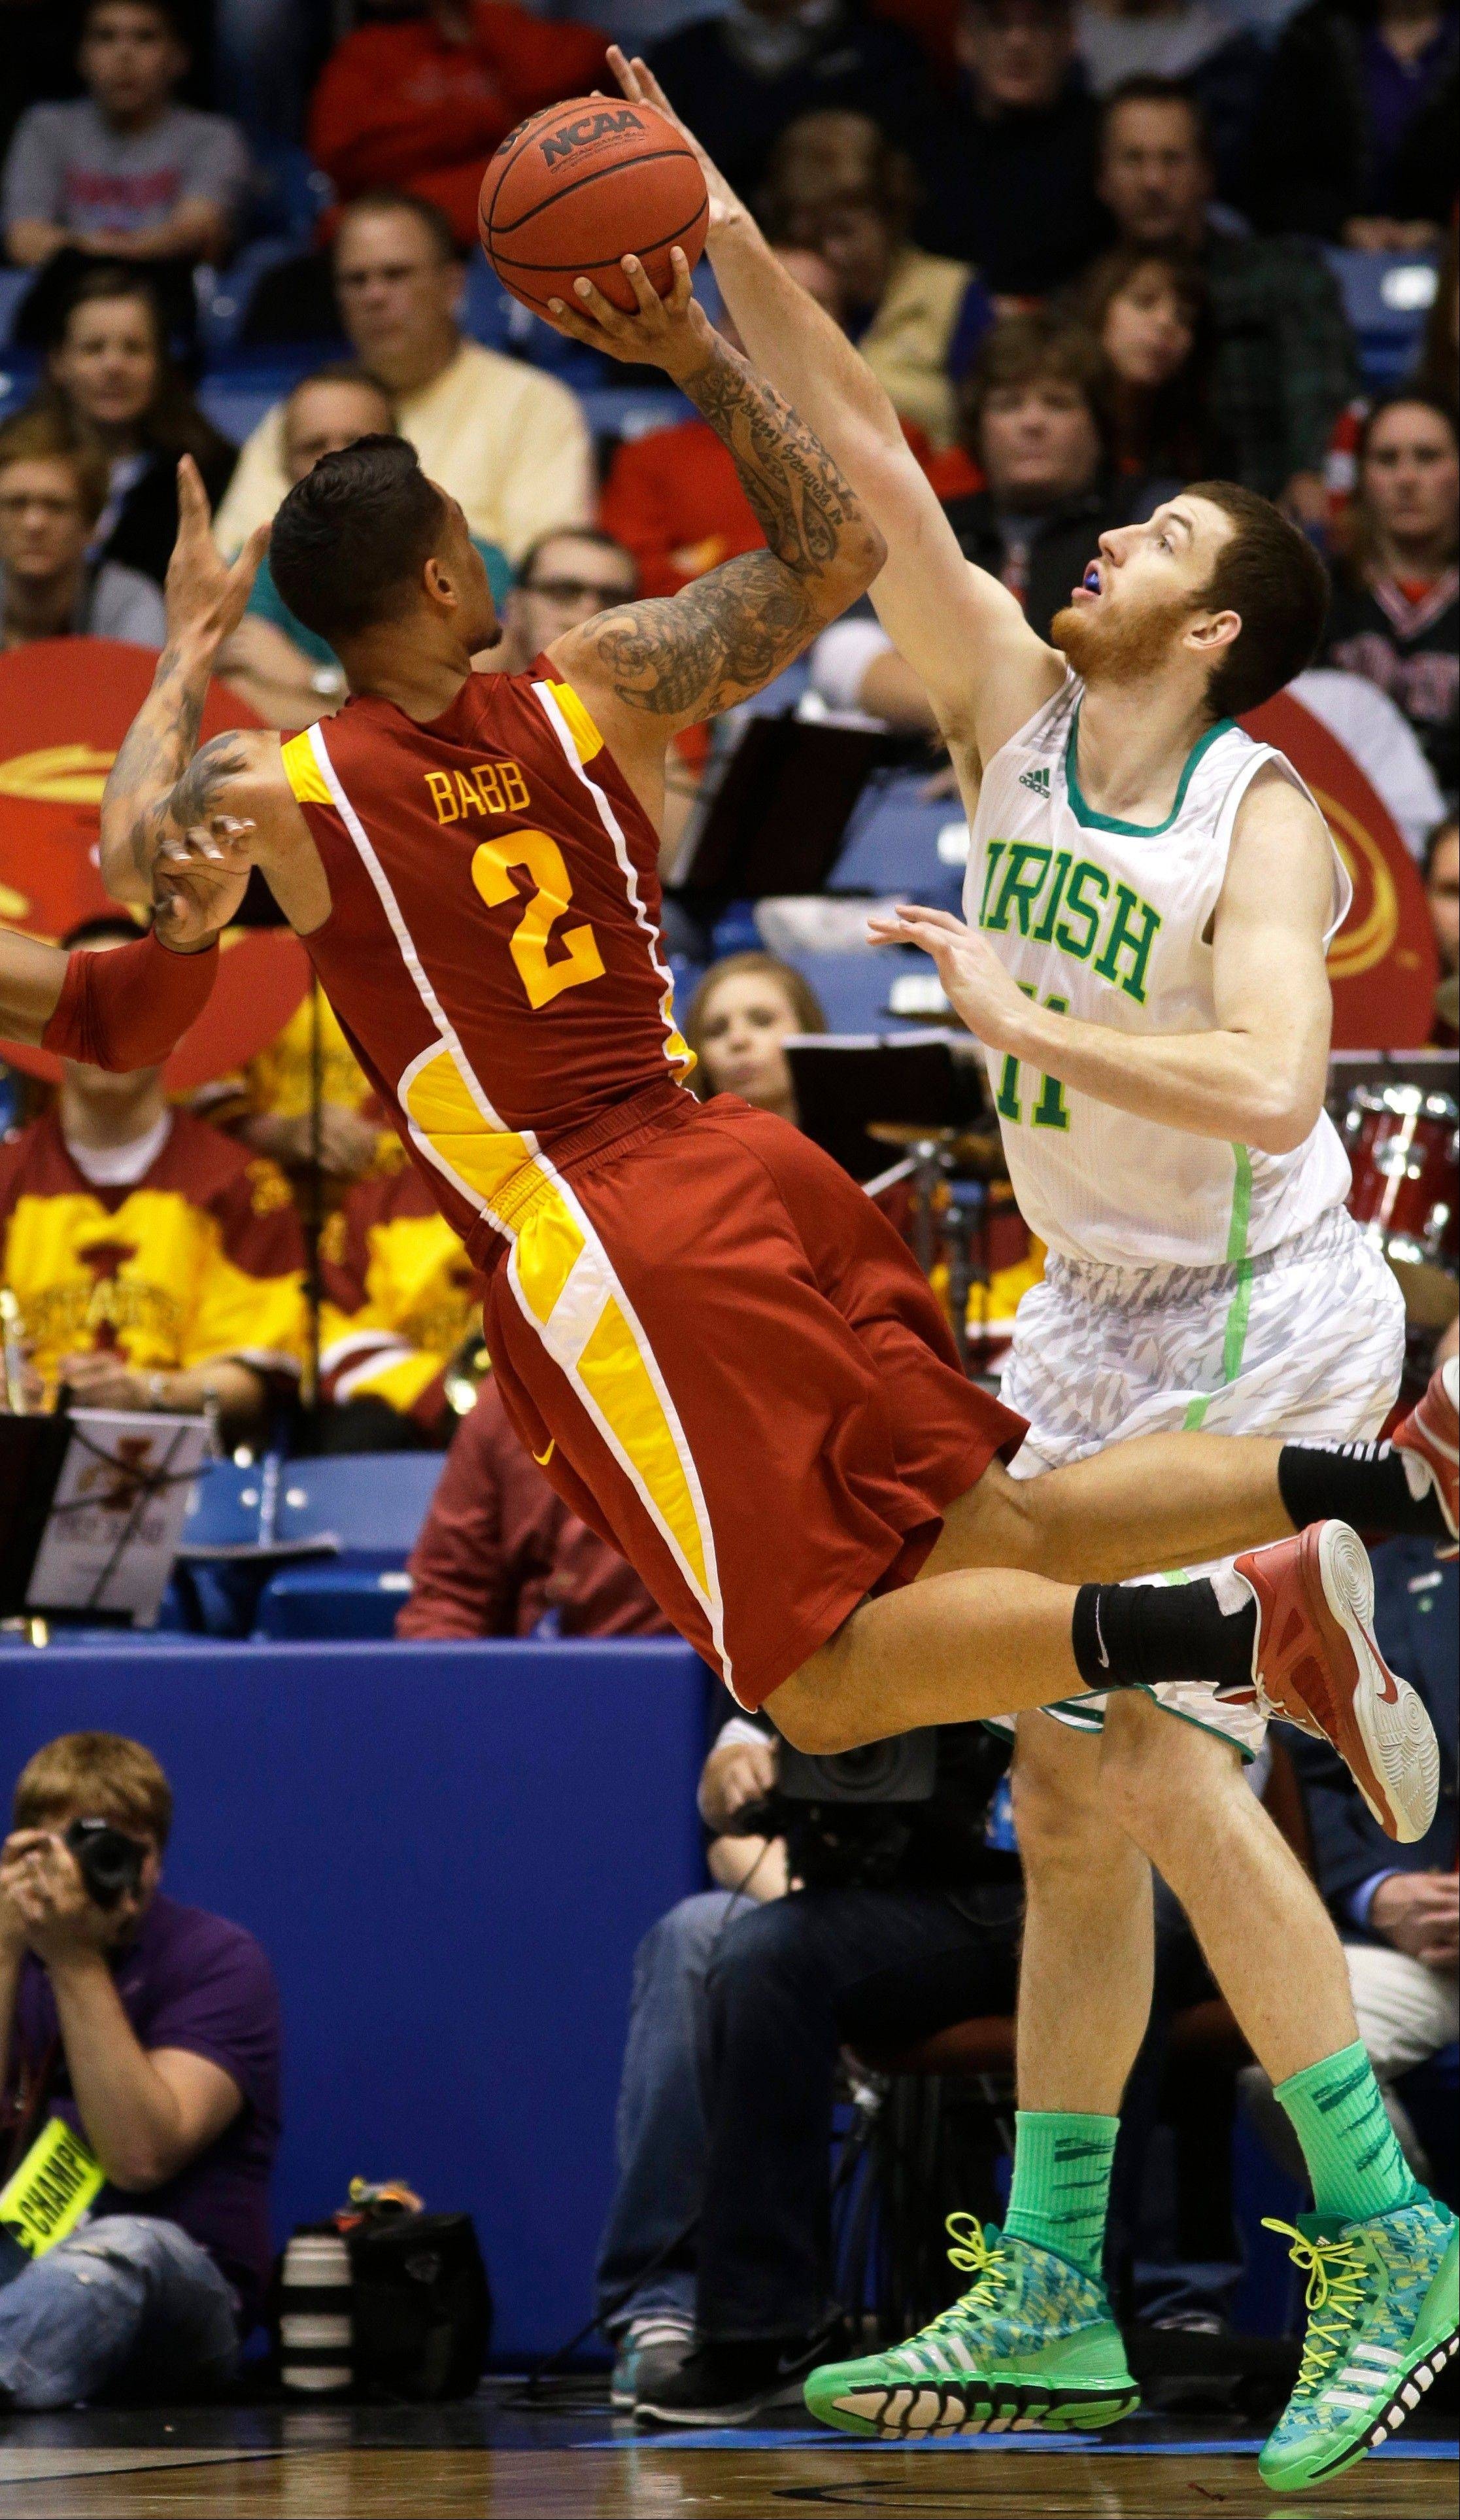 Iowa State guard Chris Babb (2) shoots against Notre Dame center Garrick Sherman (11) in the second half of a second-round game at the NCAA college basketball tournament on Friday, March 22, 2013, in Dayton, Ohio. (AP Photo/Al Behrman)